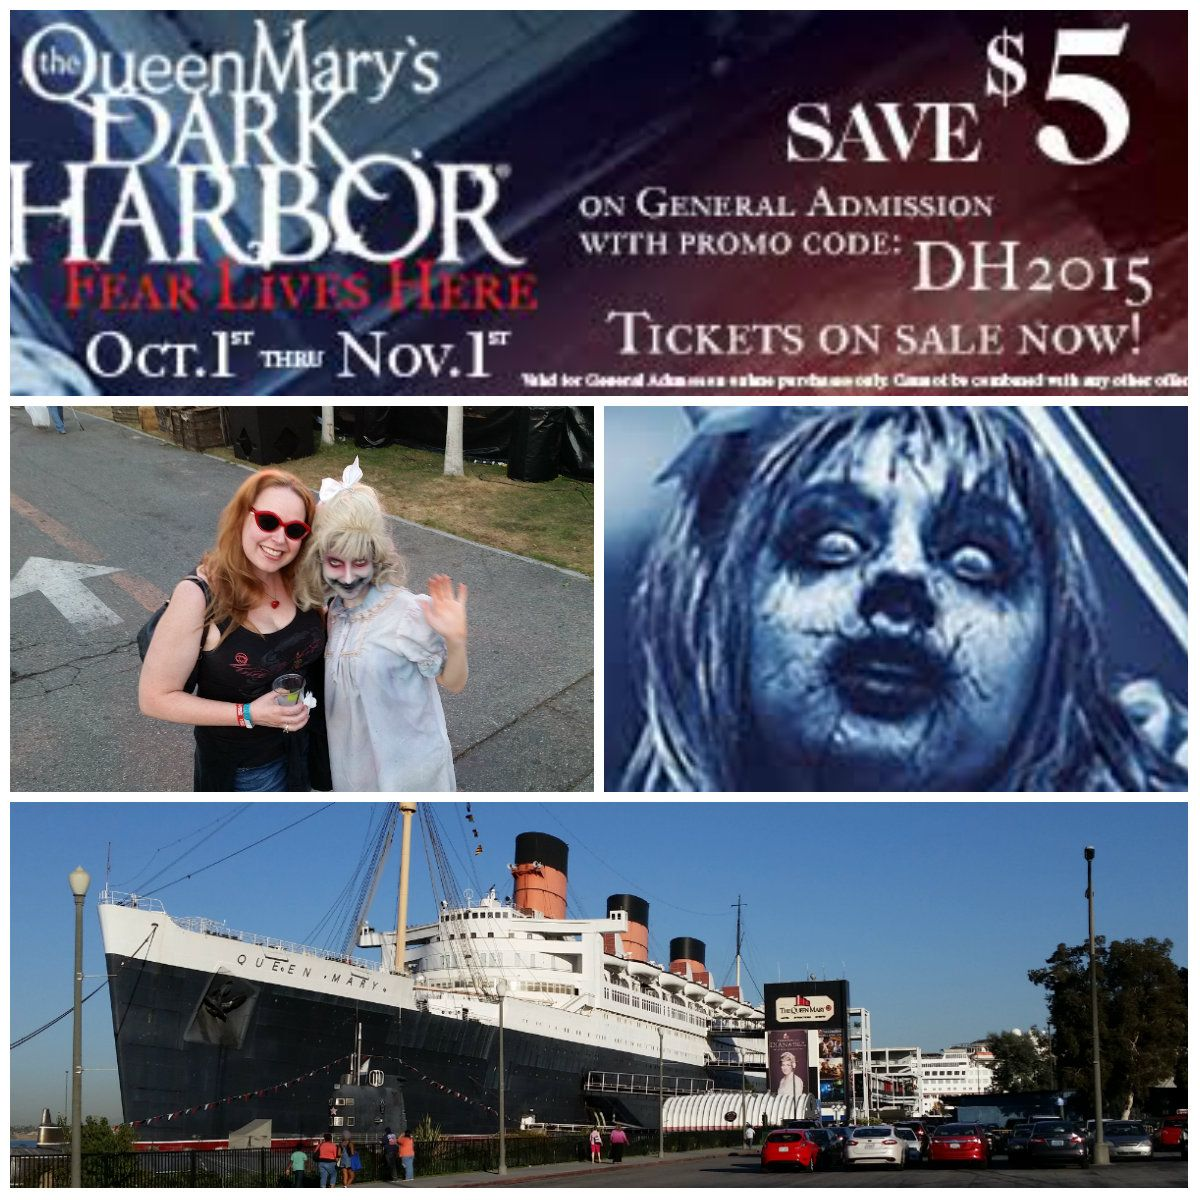 My favorite Halloween event of the year, Queen Mary's Dark Harbor ...